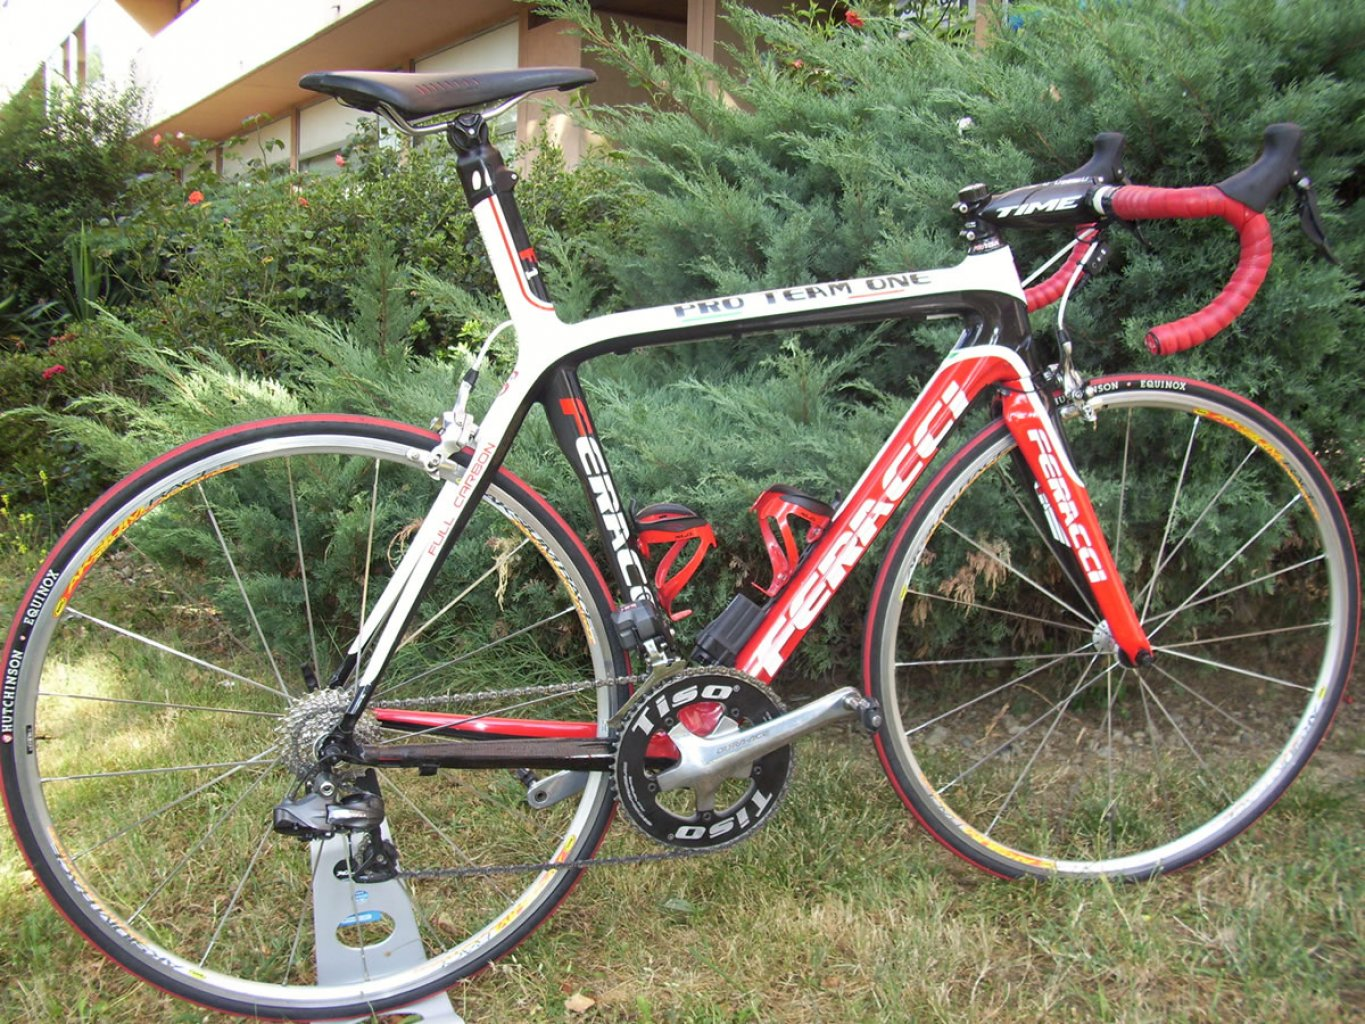 Feracci Pro Team One Ultegra Di2 occasion